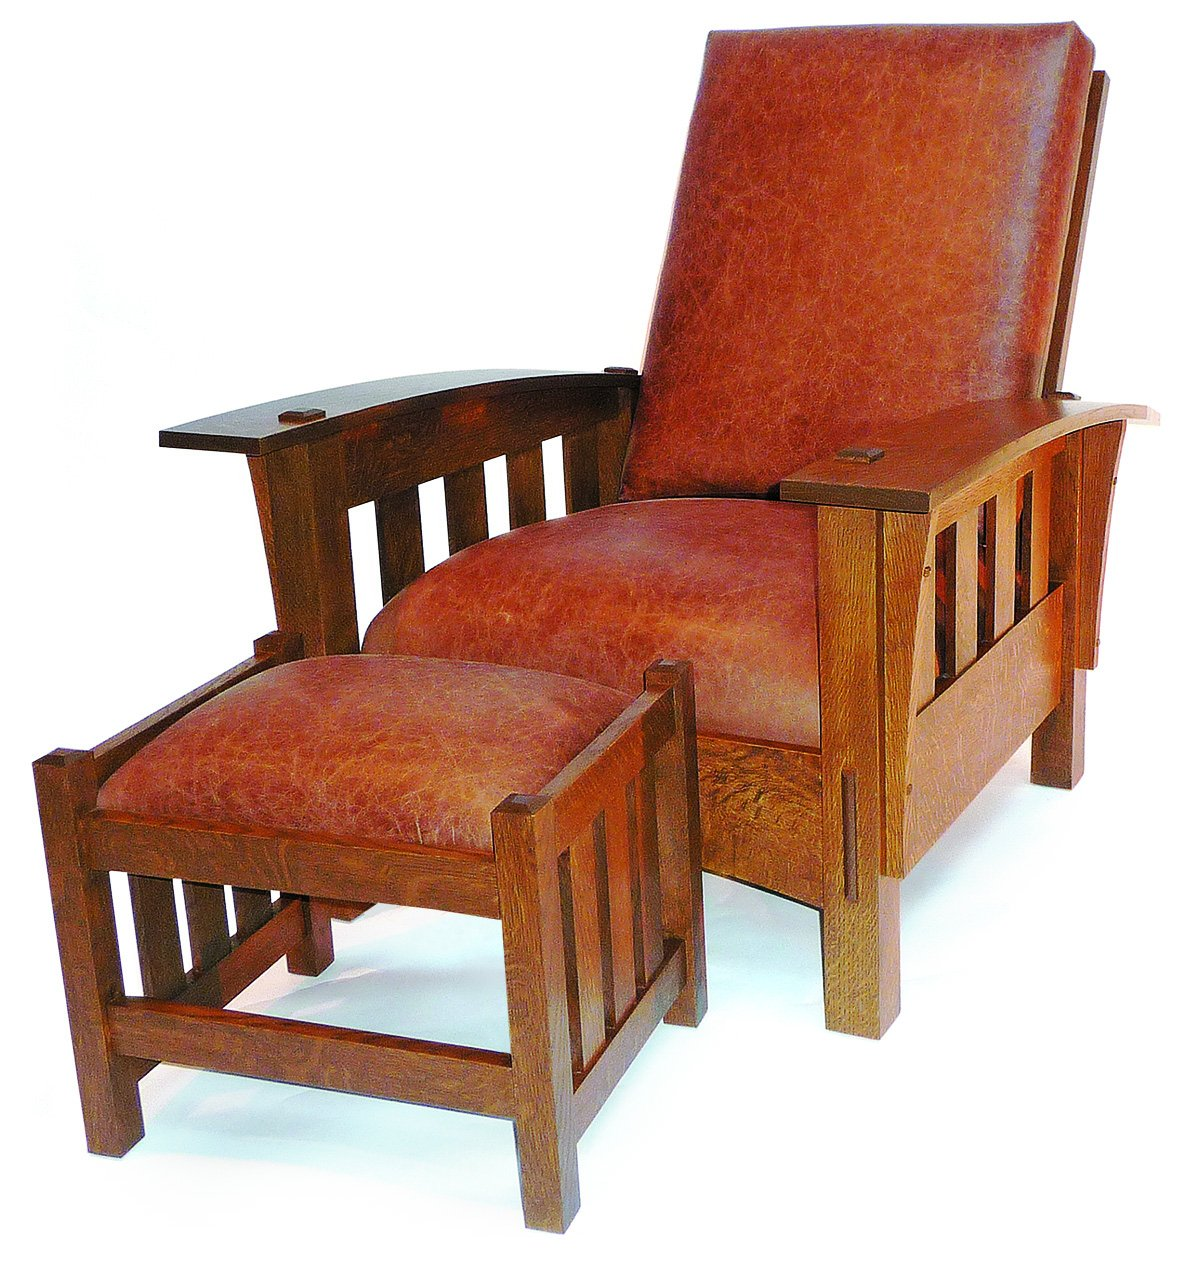 How To Build Your Own Furniture Amazoncom Build Your Own Bow Arm Morris Chair Plan American